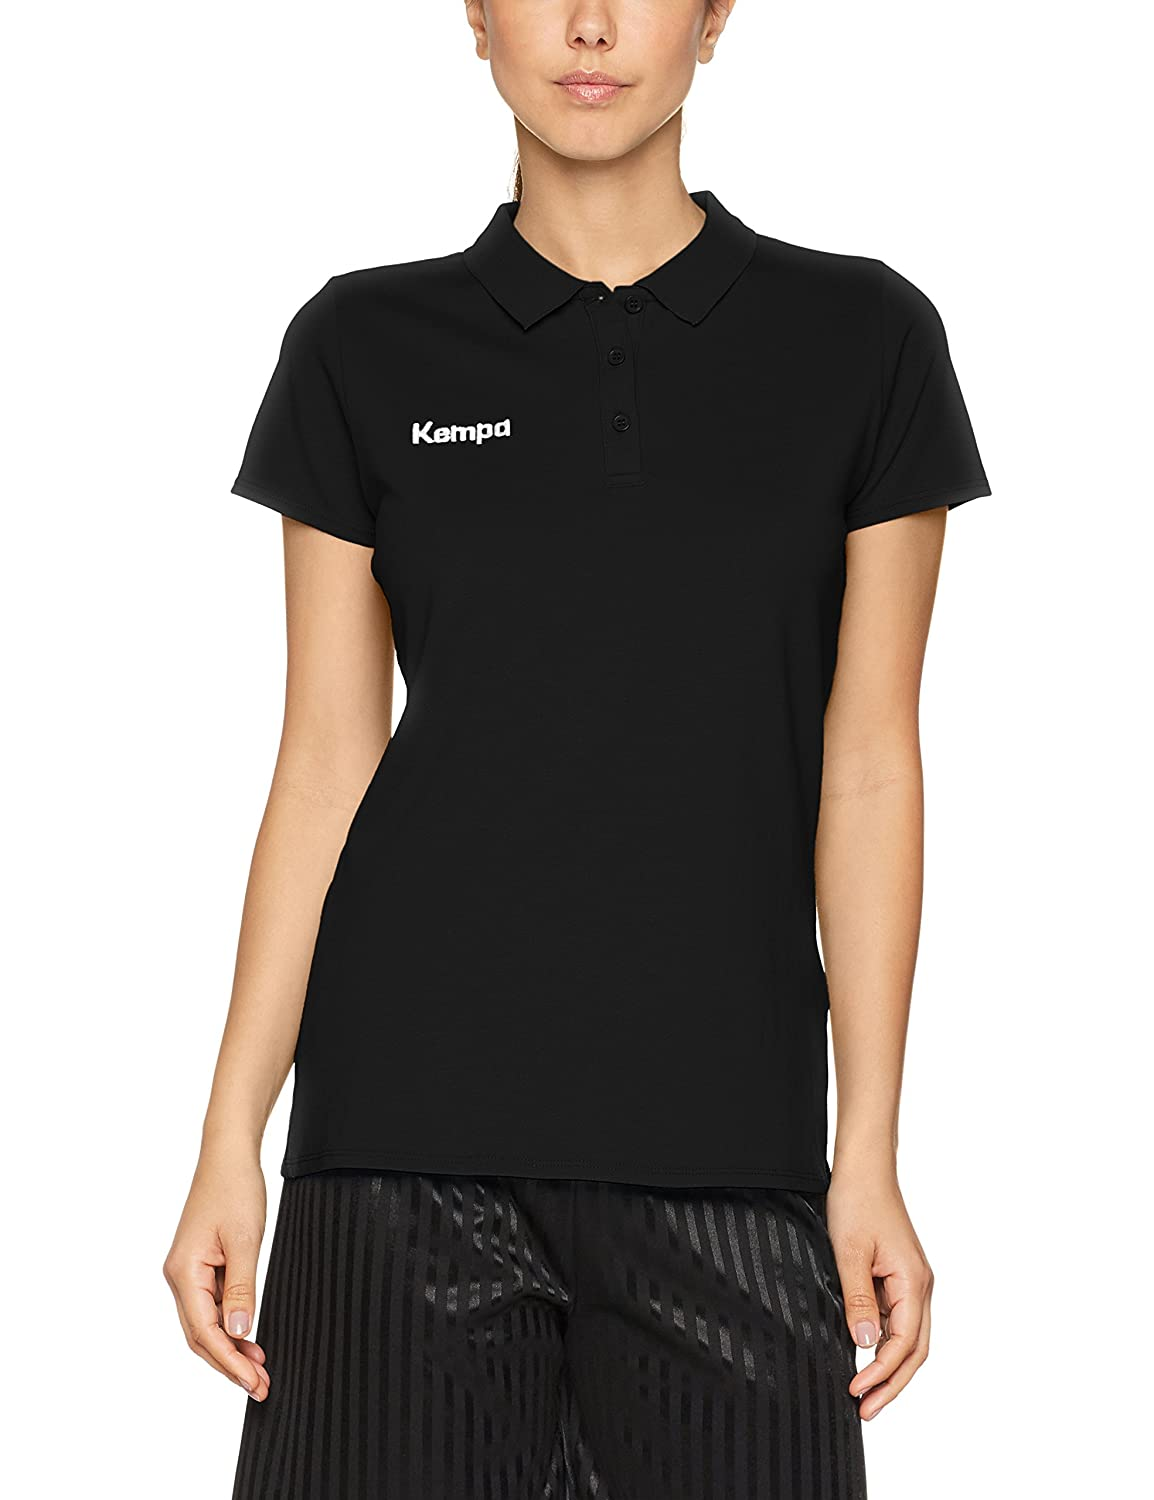 Kempa – Camiseta Polo